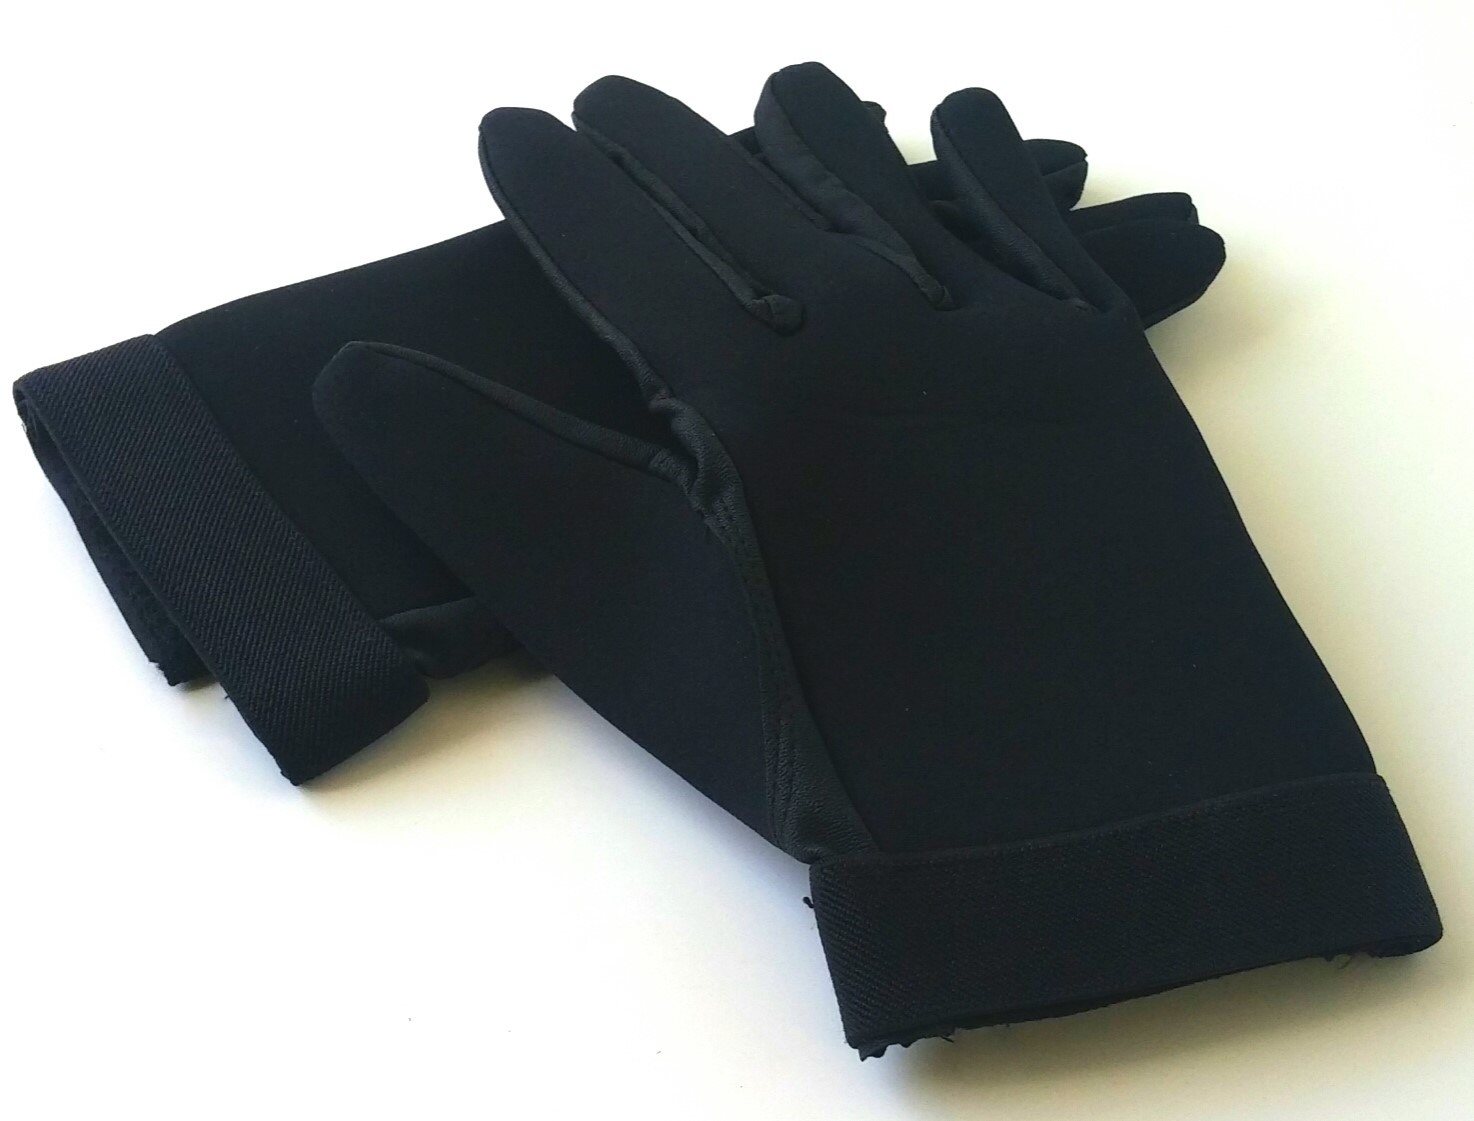 Neoprene combat gloves / Black